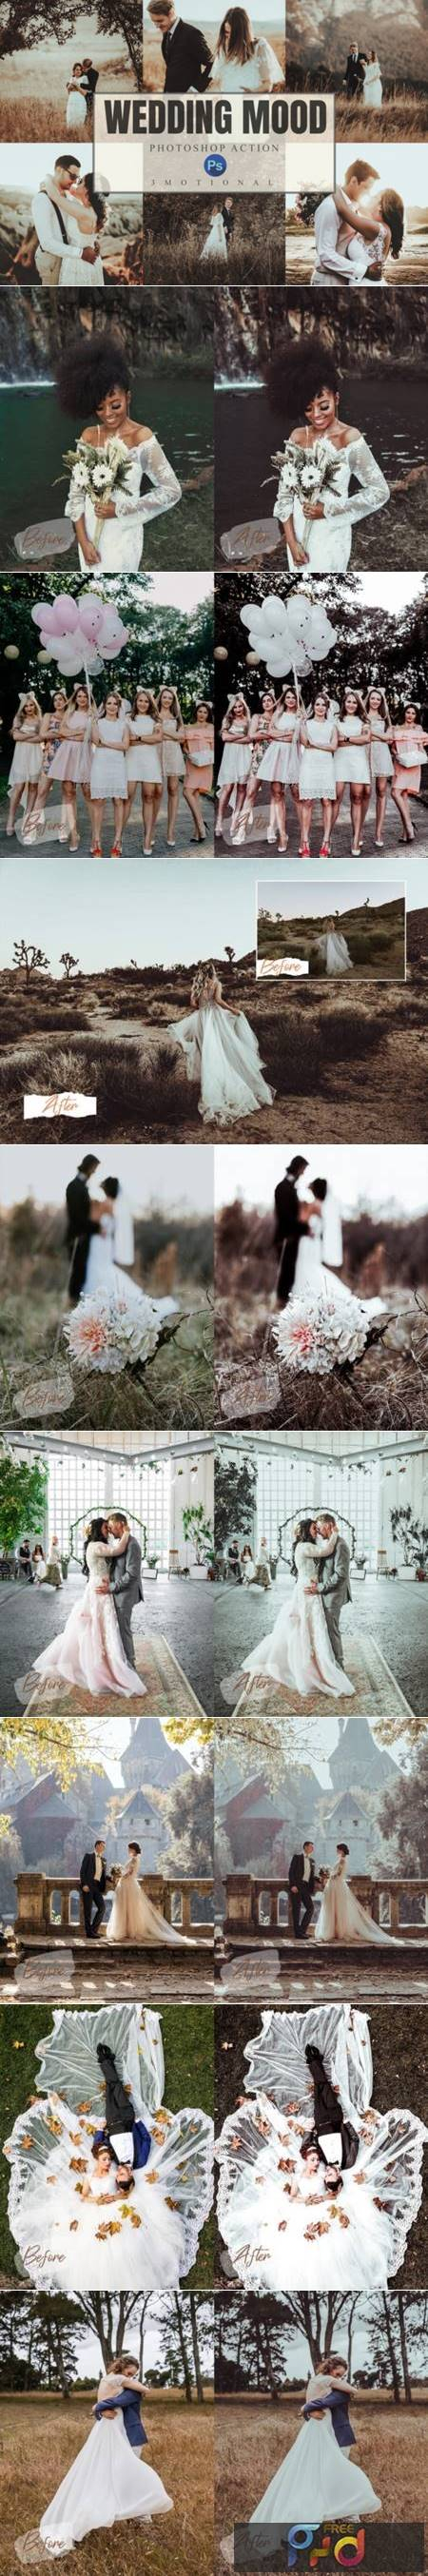 8 Wedding Mood Photoshop Actions ACR LUT 4391908 1